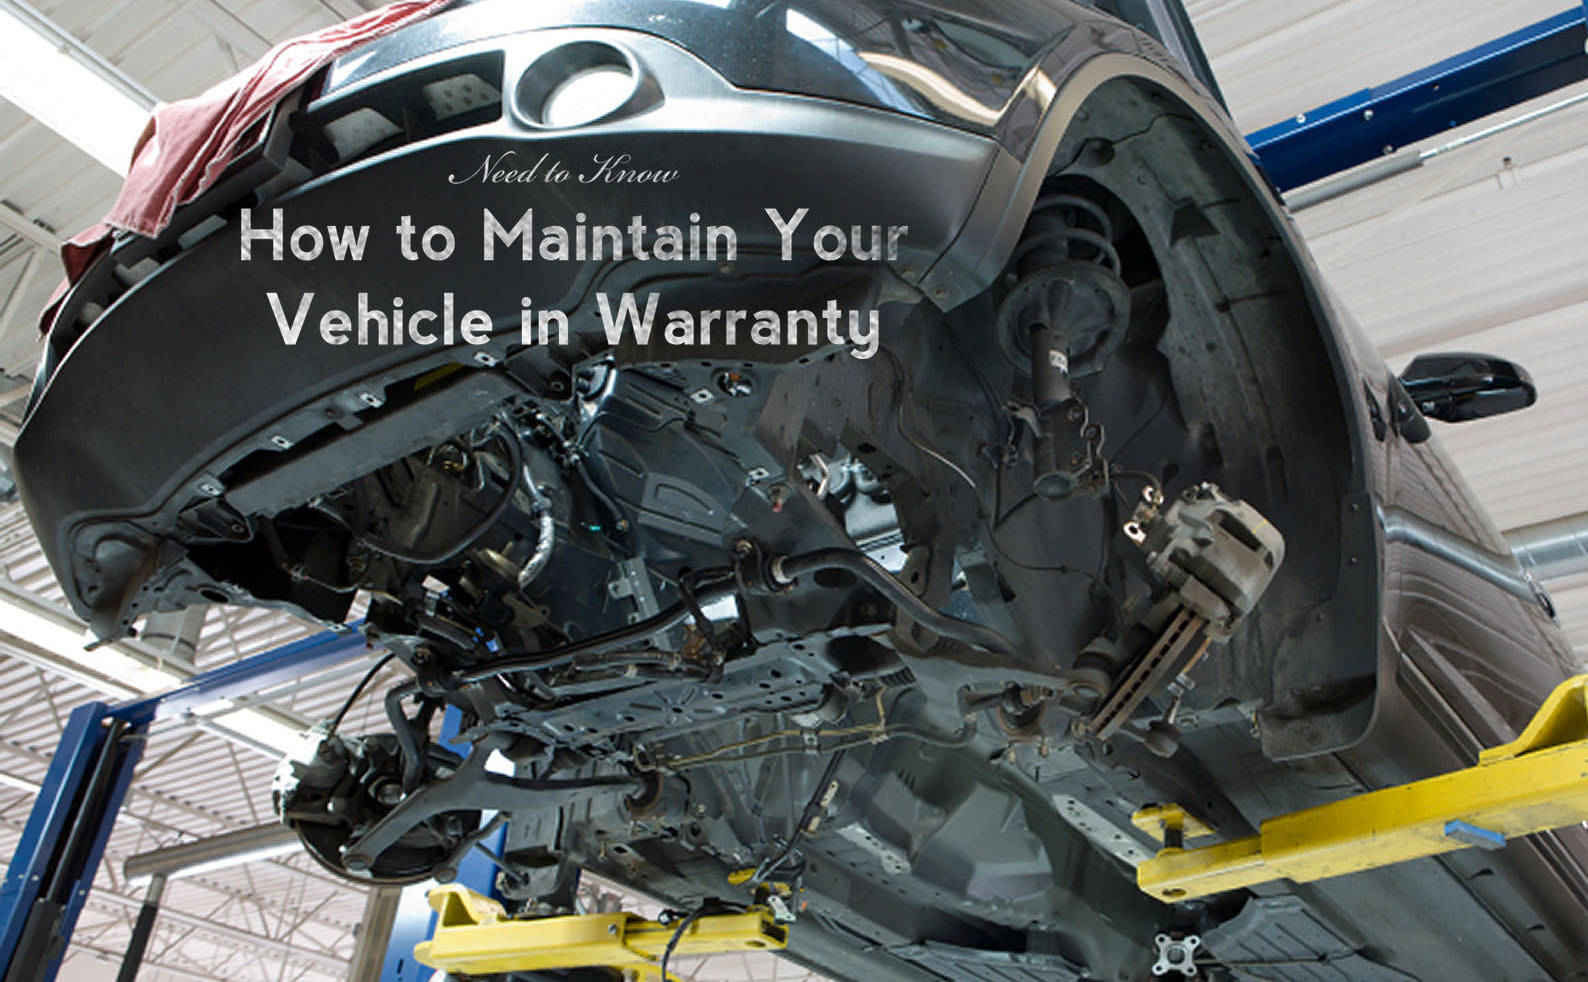 How to Maintain Your Vehicle in Warranty